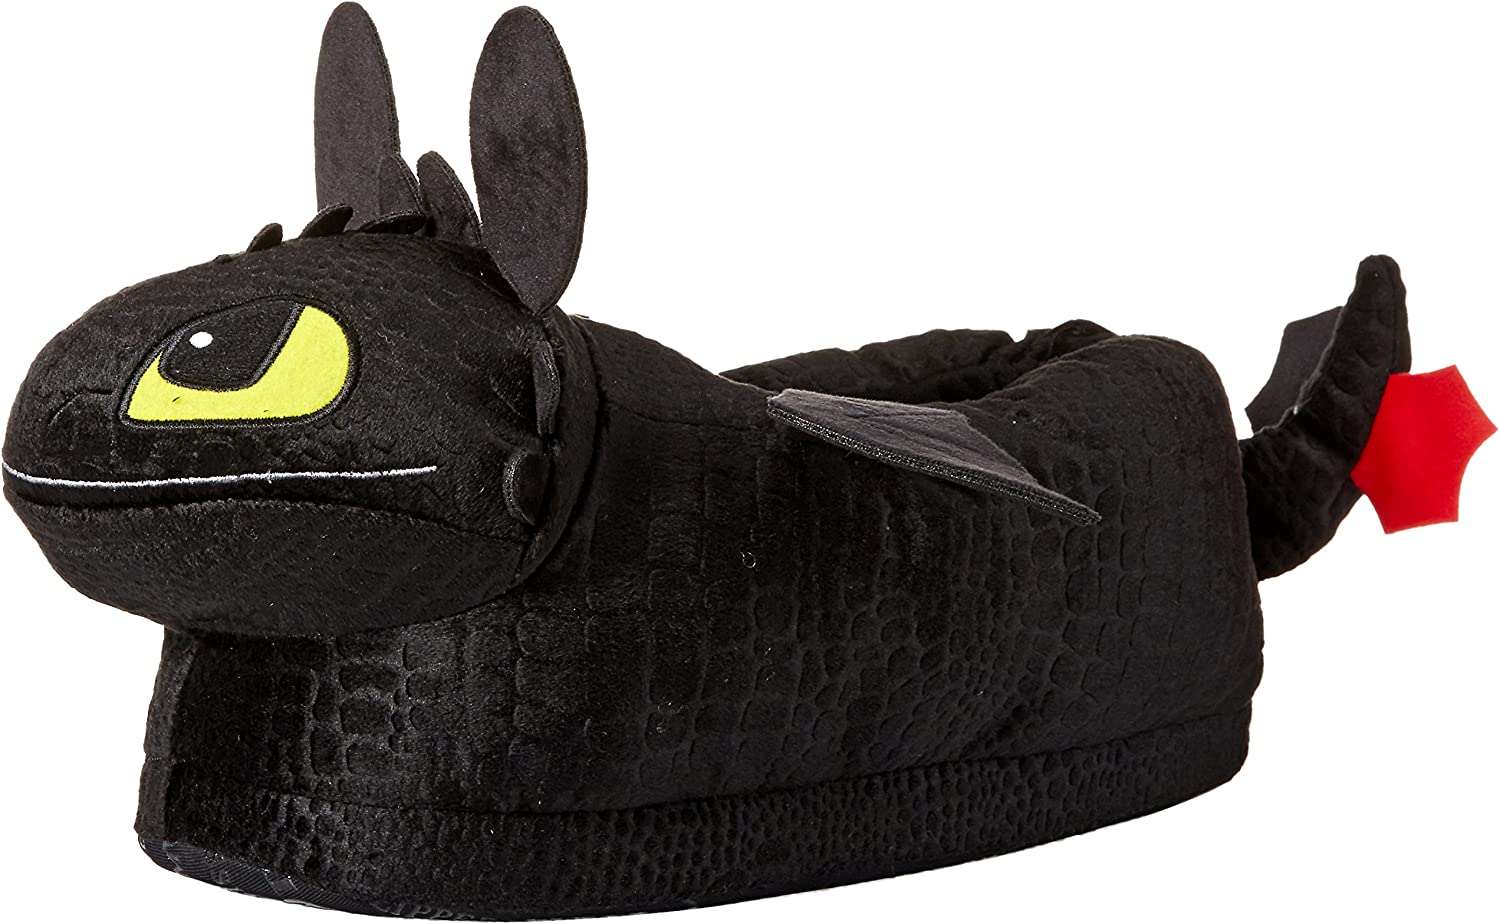 Happy Feet - DreamWorks How To Train Your Dragon - Toothless Slippers - XX-Large